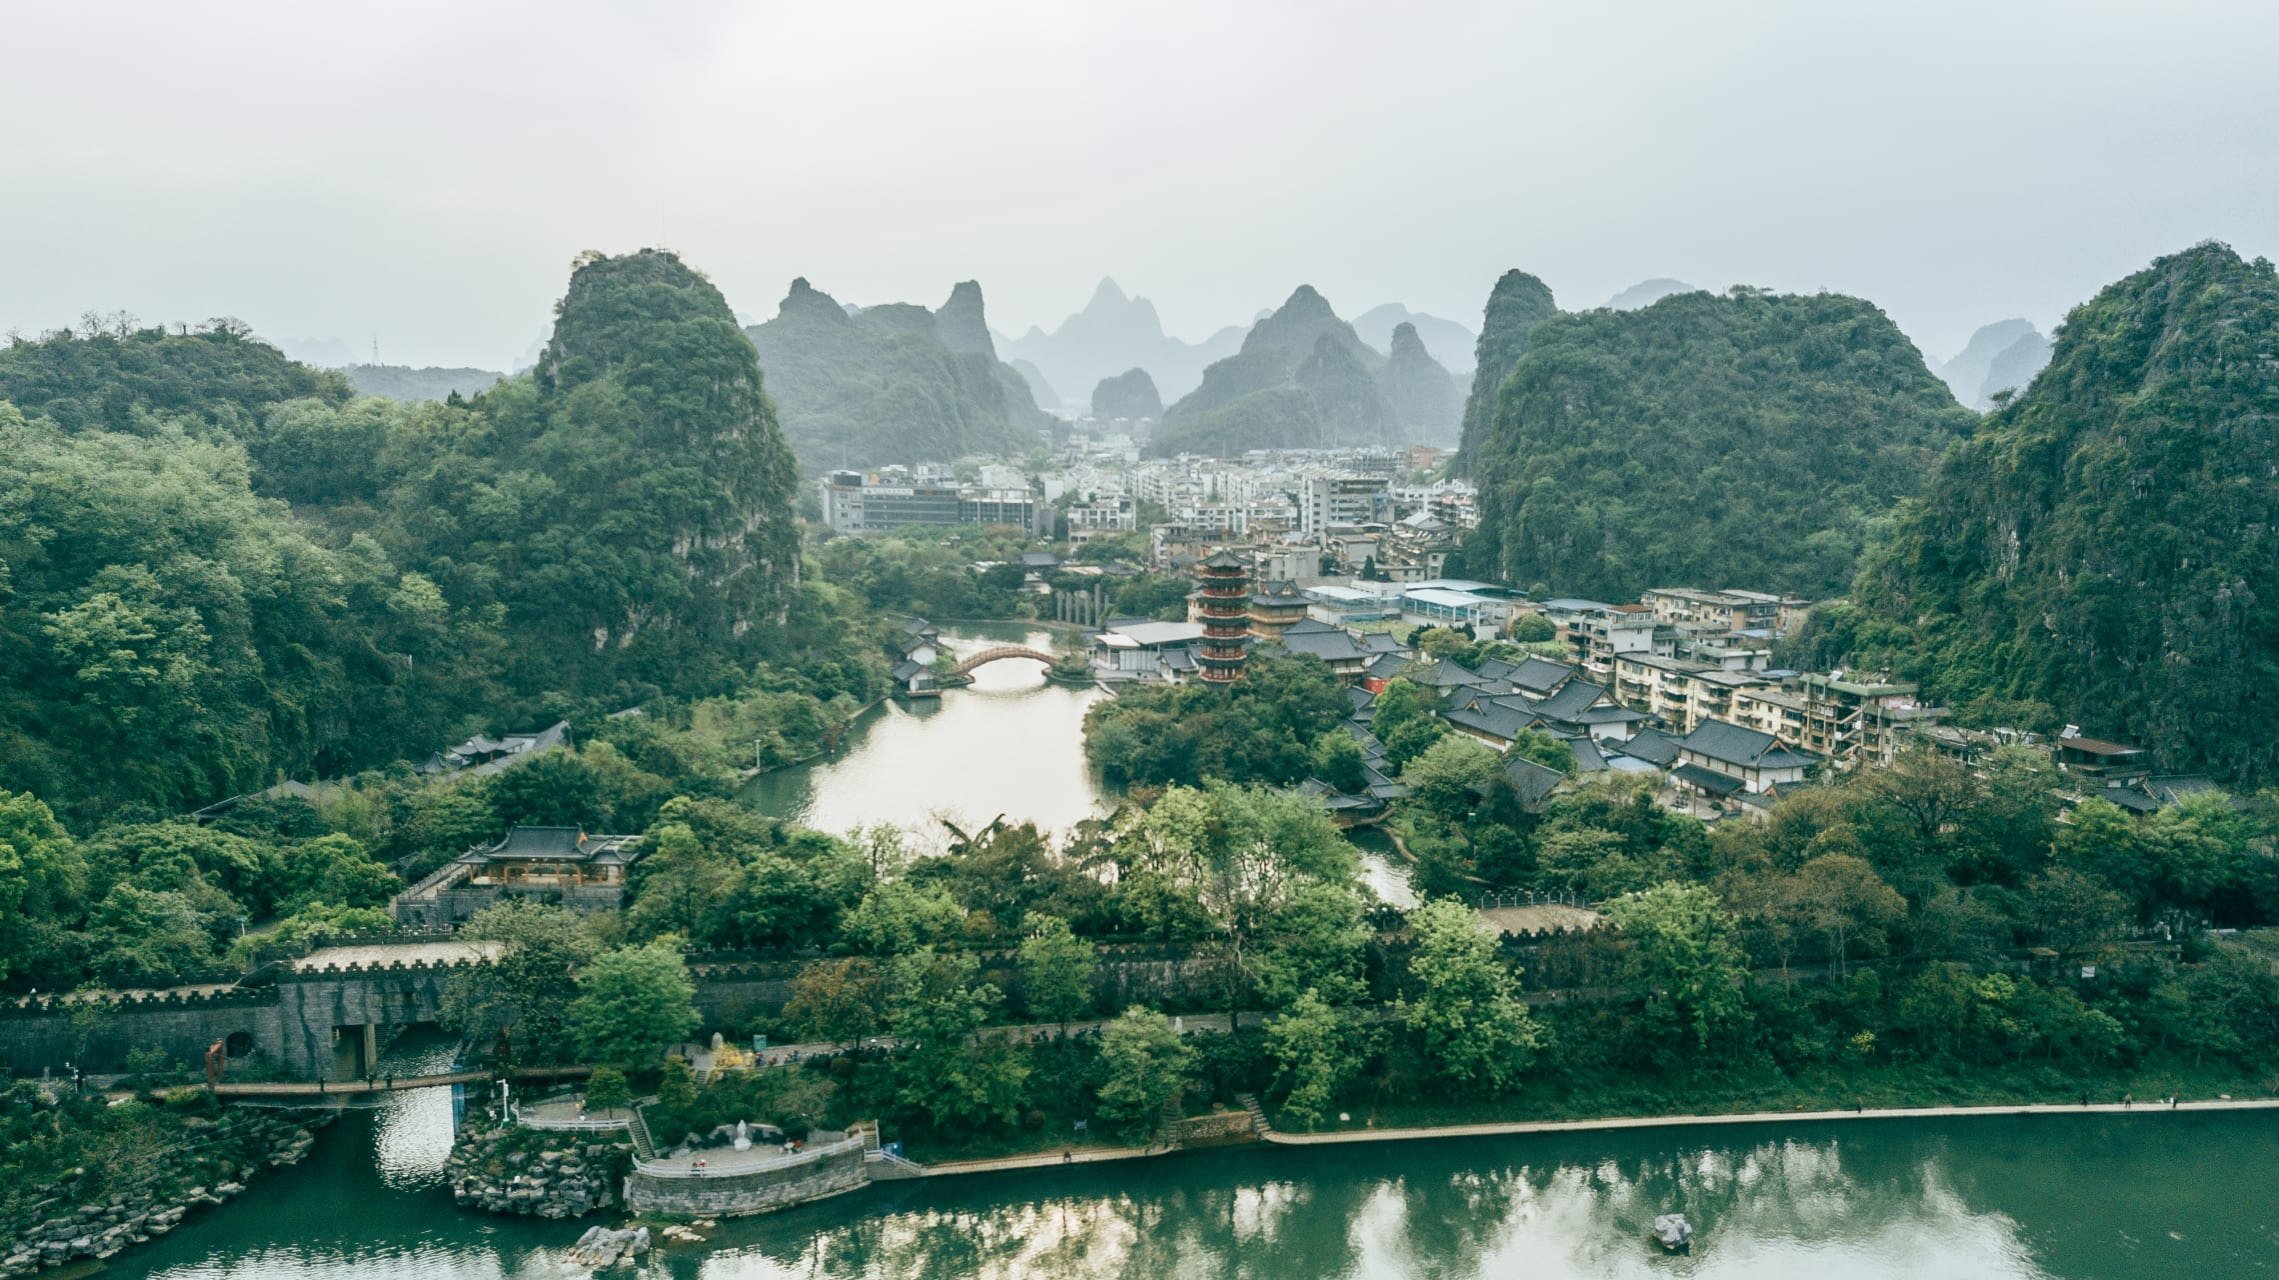 Guilin - Birds-eye View of Guilin from Elephant Trunk Hill